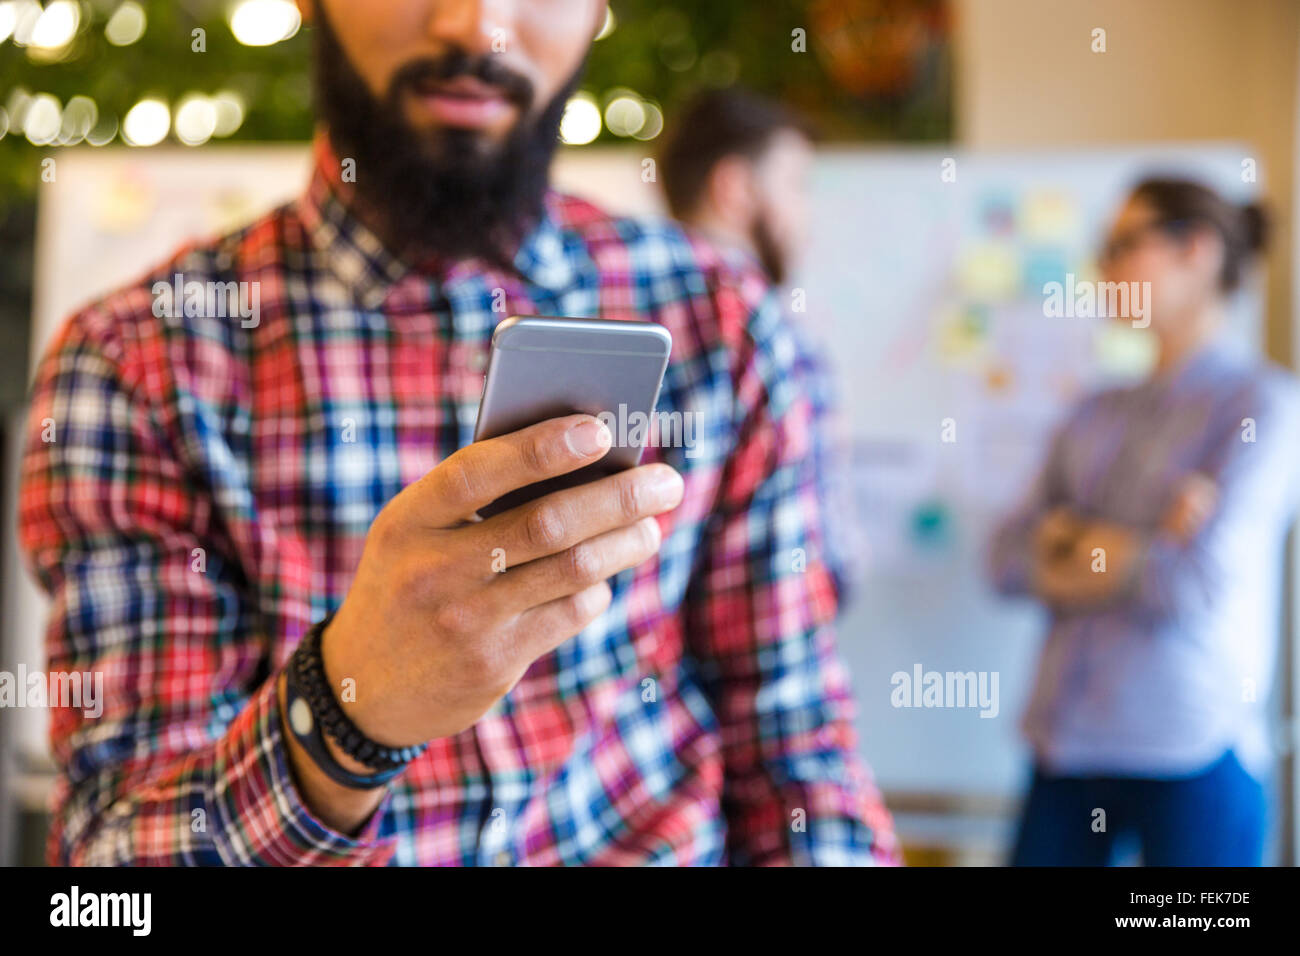 Cropped image of afro american man using smartphone in office with colleagues on background - Stock Image